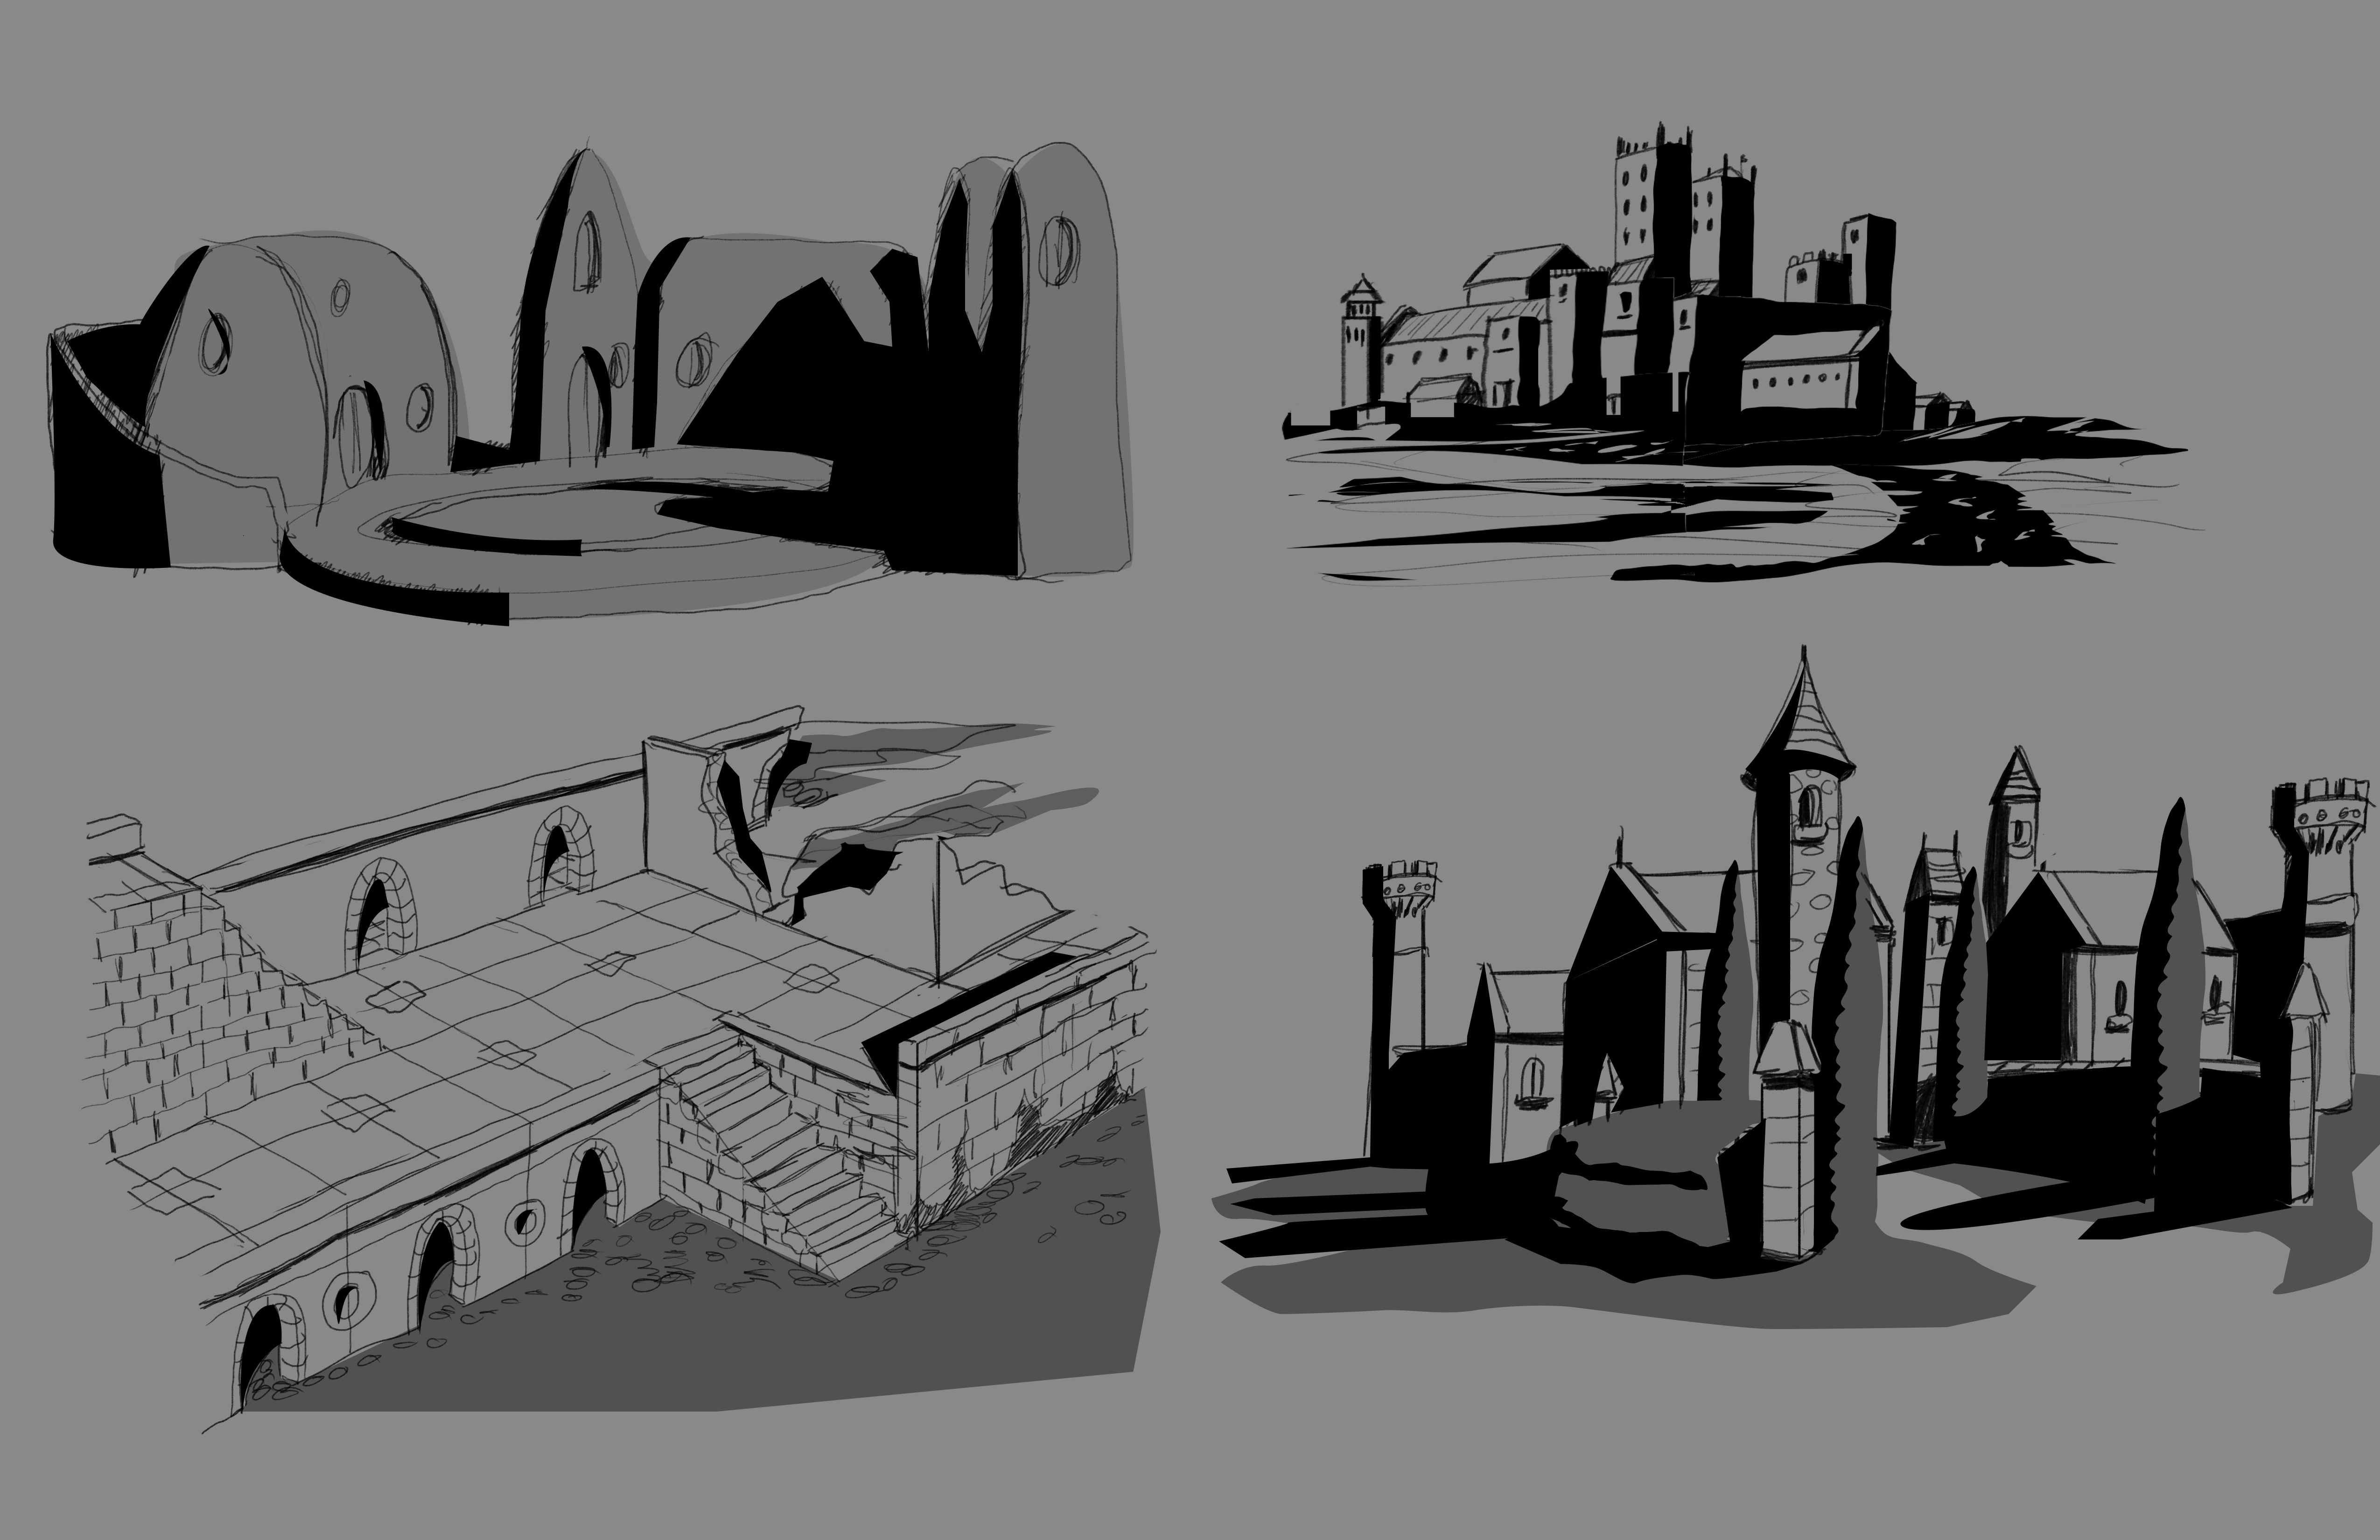 This is a graphic page exploring locations while designing the game.